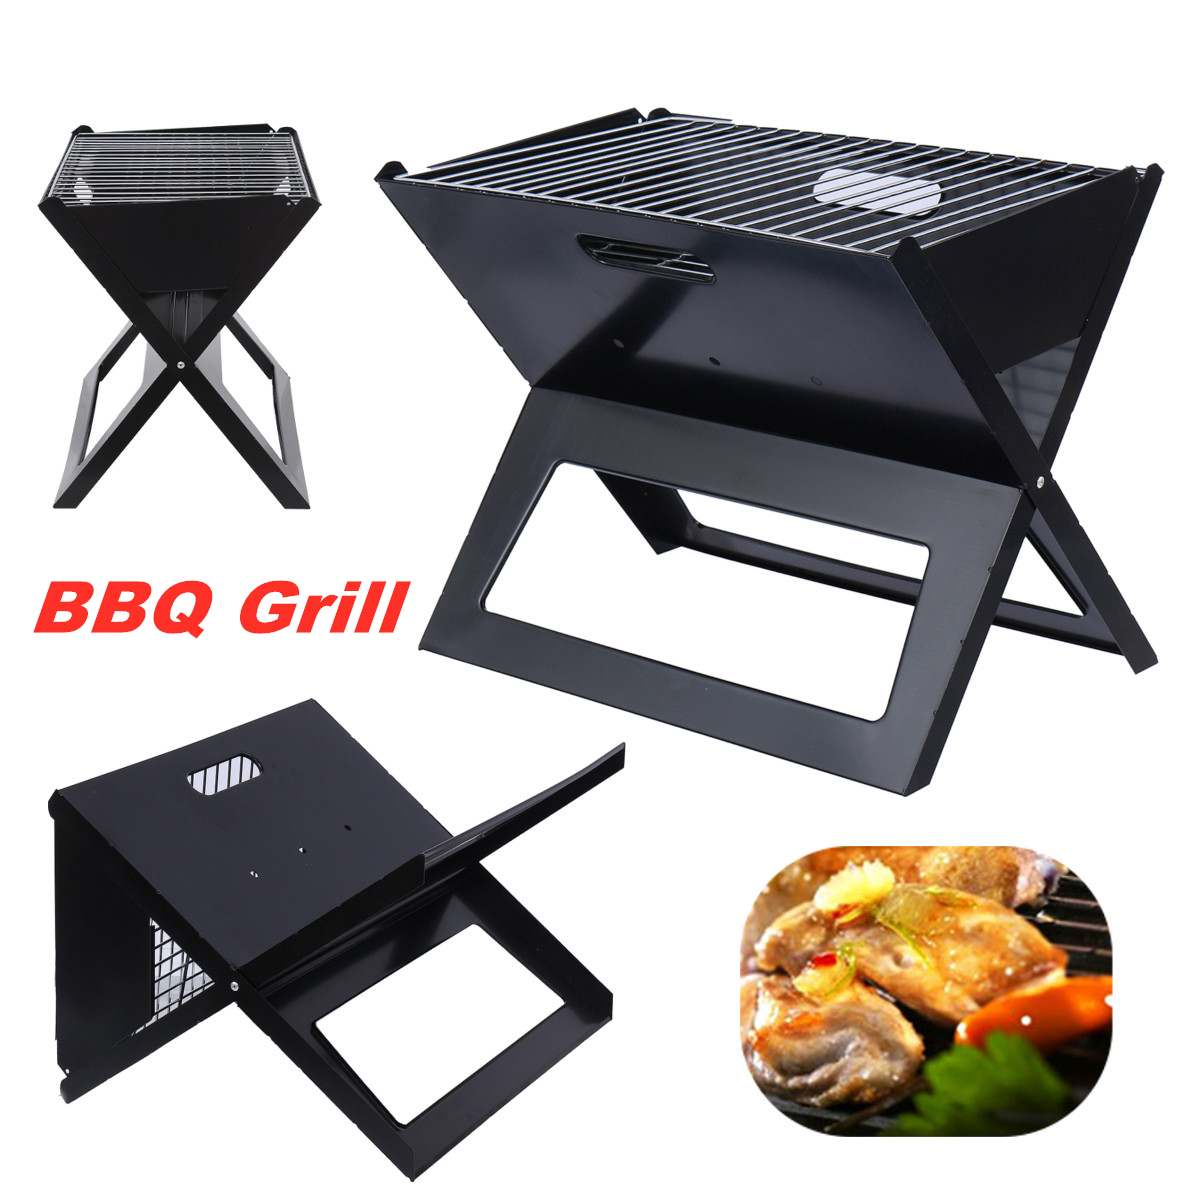 Portable Charcoal Grill Folding Barbecue BBQ Grill Camping Picnic Outdoor Cooker Tool Folding Charcoal Barbecue BBQ Grill Net